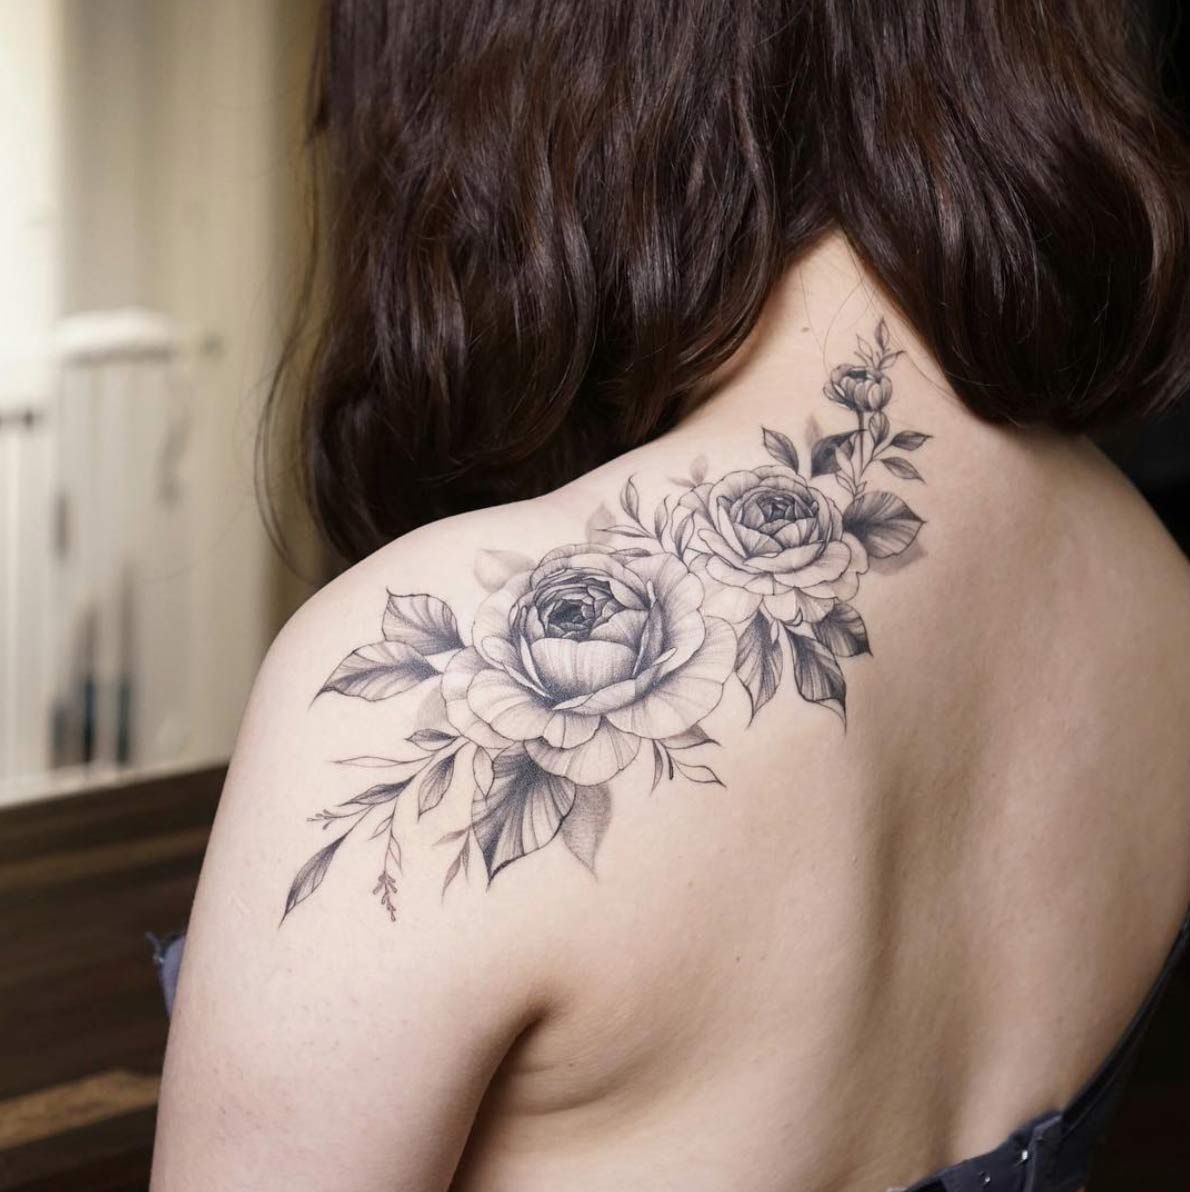 Literally Every Summer Tattoo You Never Knew You Needed Tattooblend Shoulder Tattoos For Women Flower Tattoo Shoulder Tattoos For Women Flowers